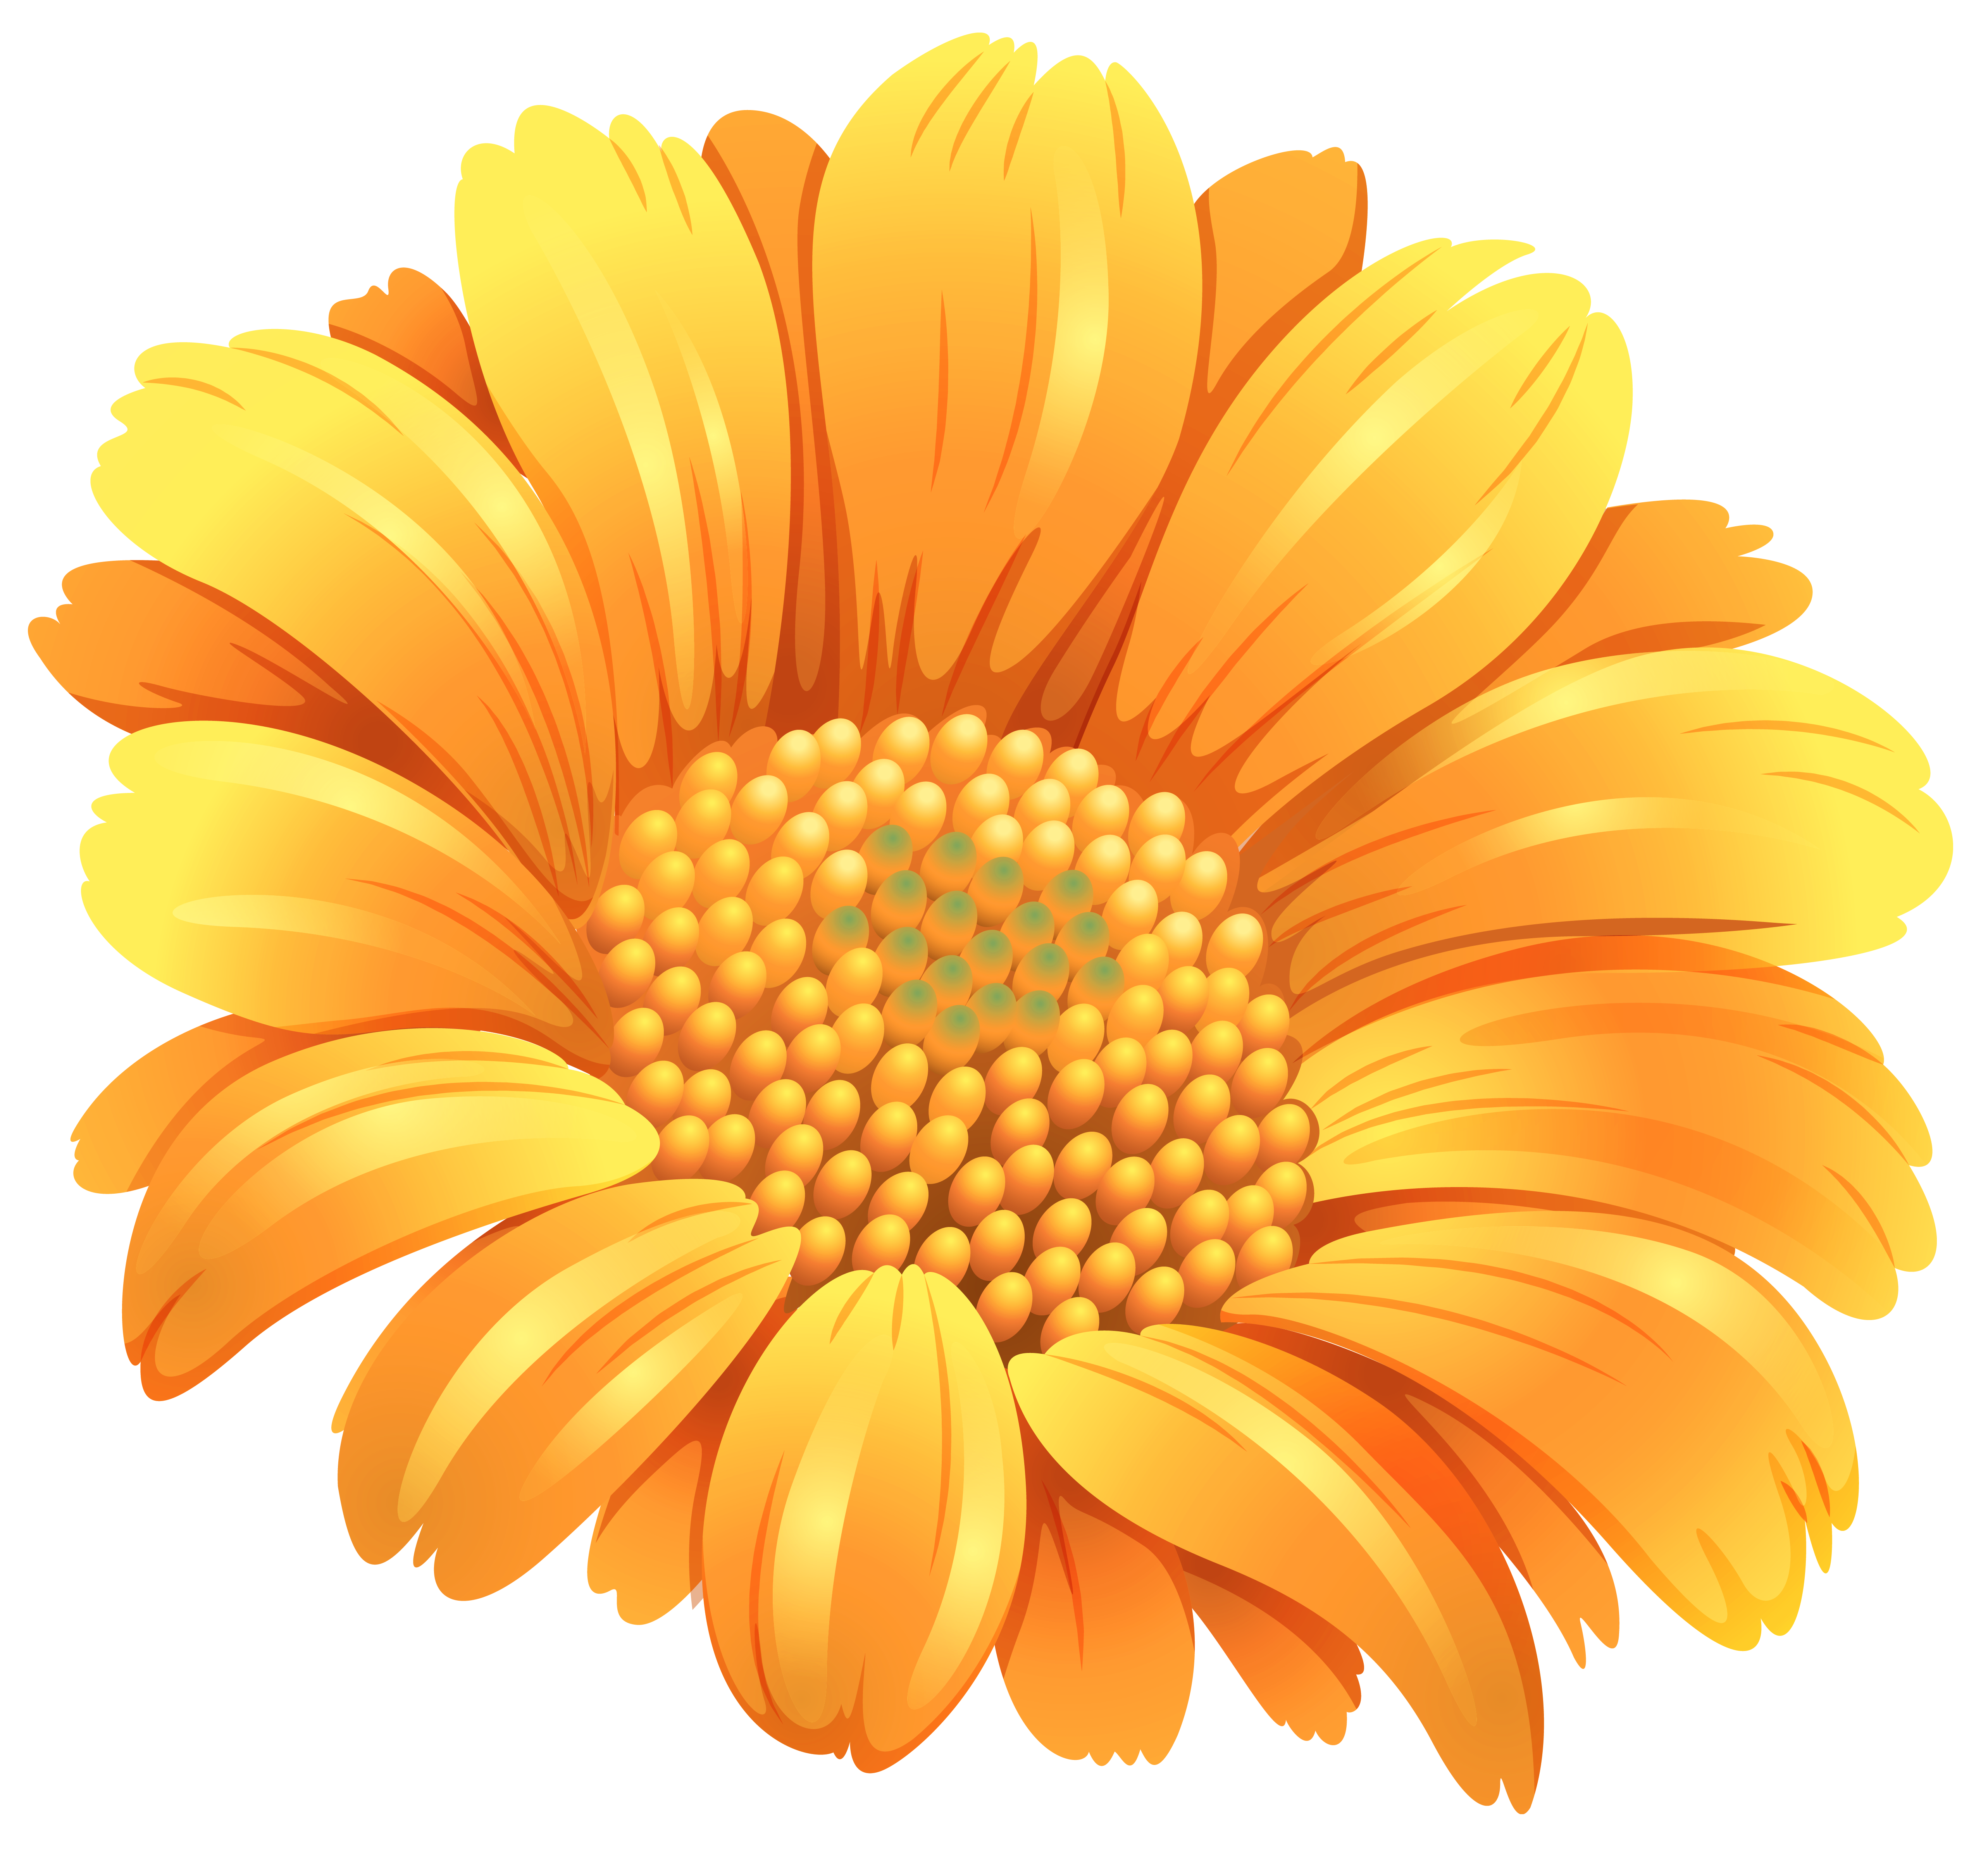 Orange flower png. Clipart image gallery yopriceville